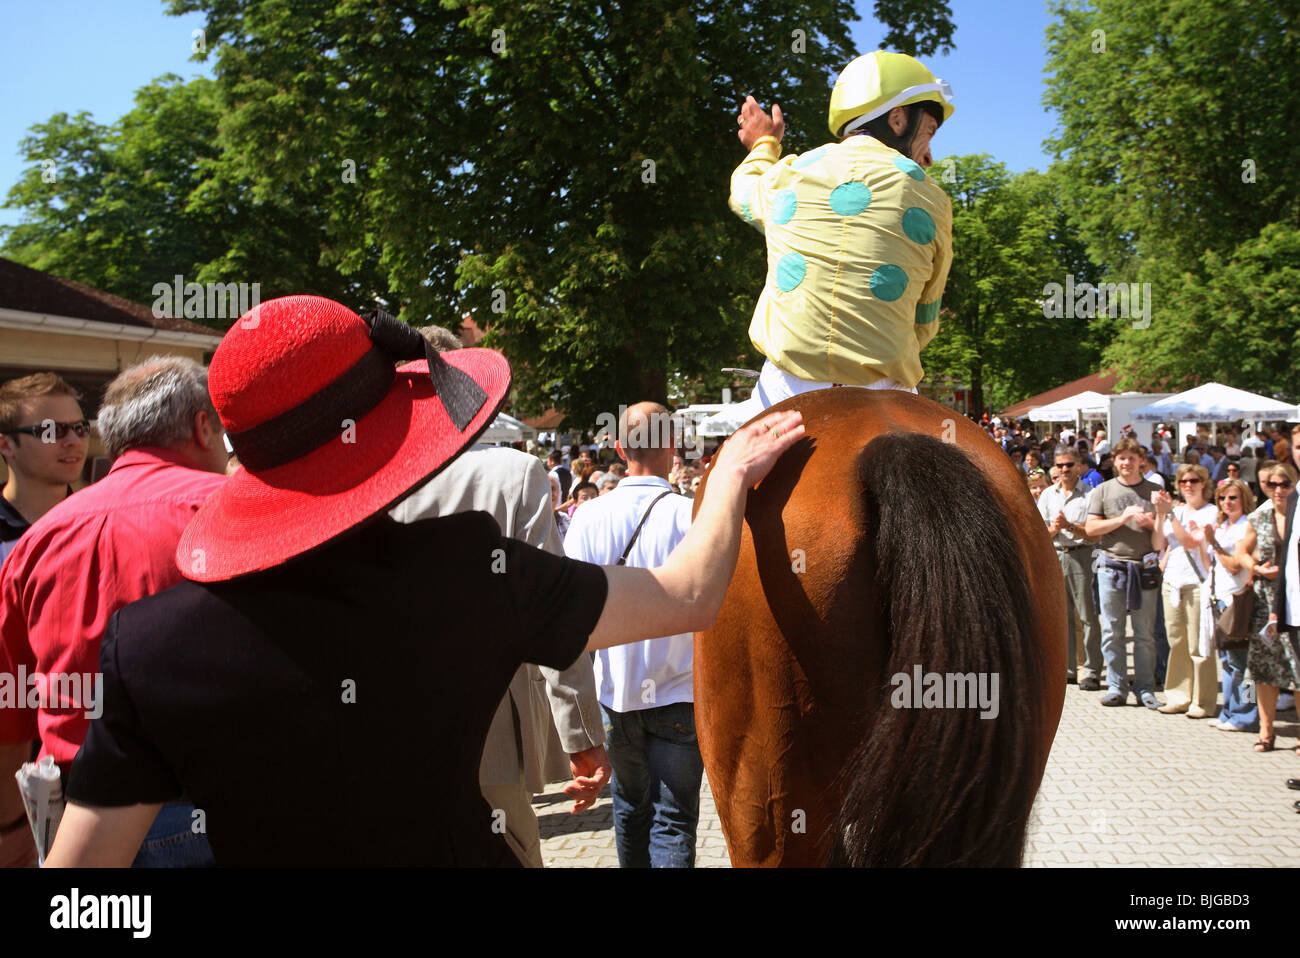 A jockey on a horse greeting the spectators at horse races, Iffezheim, Baden-Wurttemberg Stock Photo